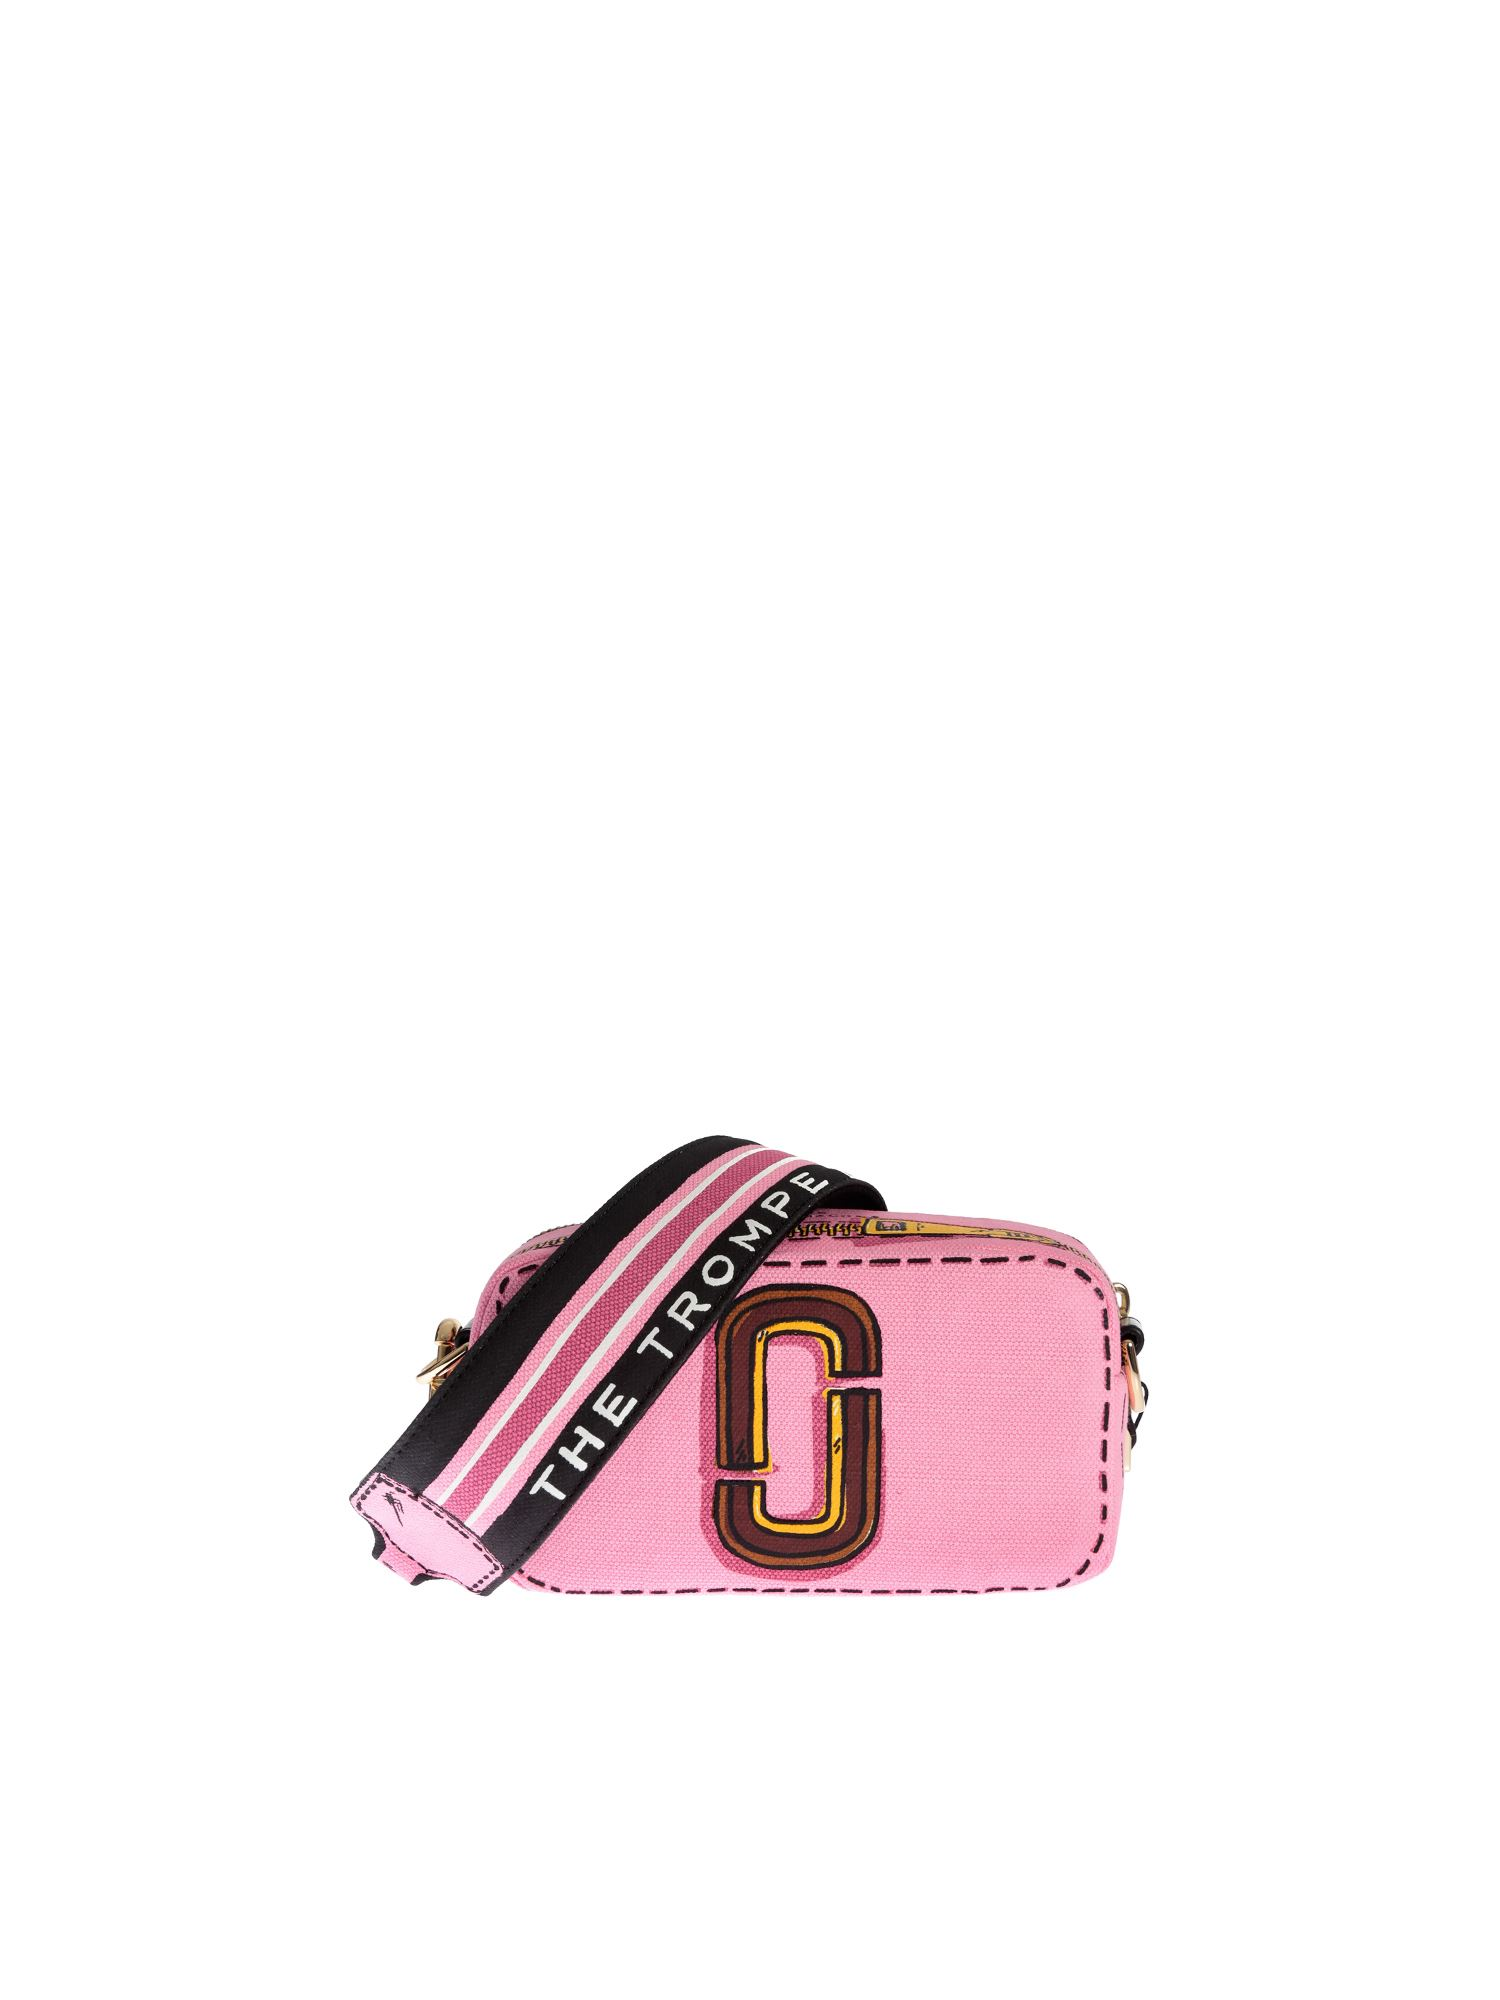 Marc Jacobs THE TROMPE L'OEIL SNAPSHOT BAG IN PINK